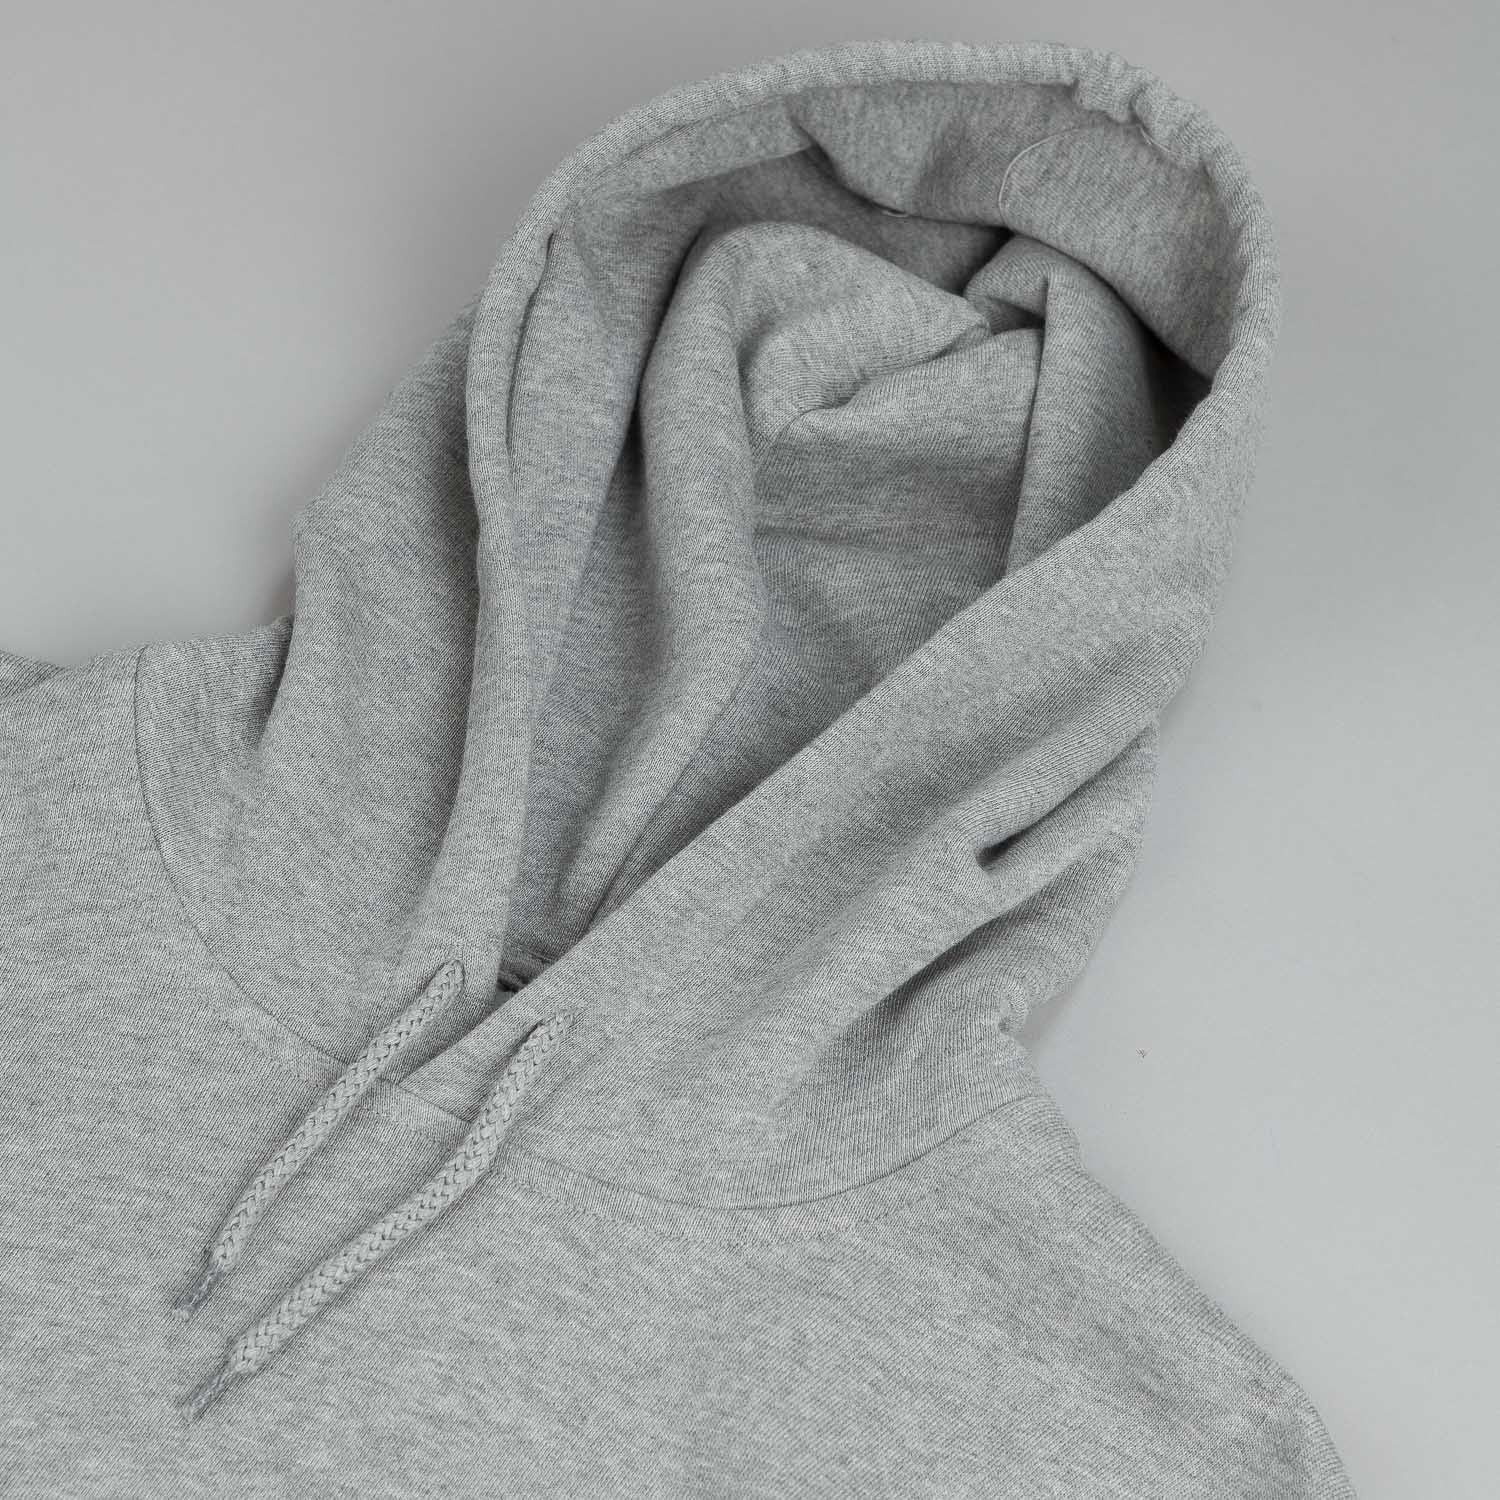 Carhartt 89 Hooded Sweatshirt - Grey Heather / Resolution